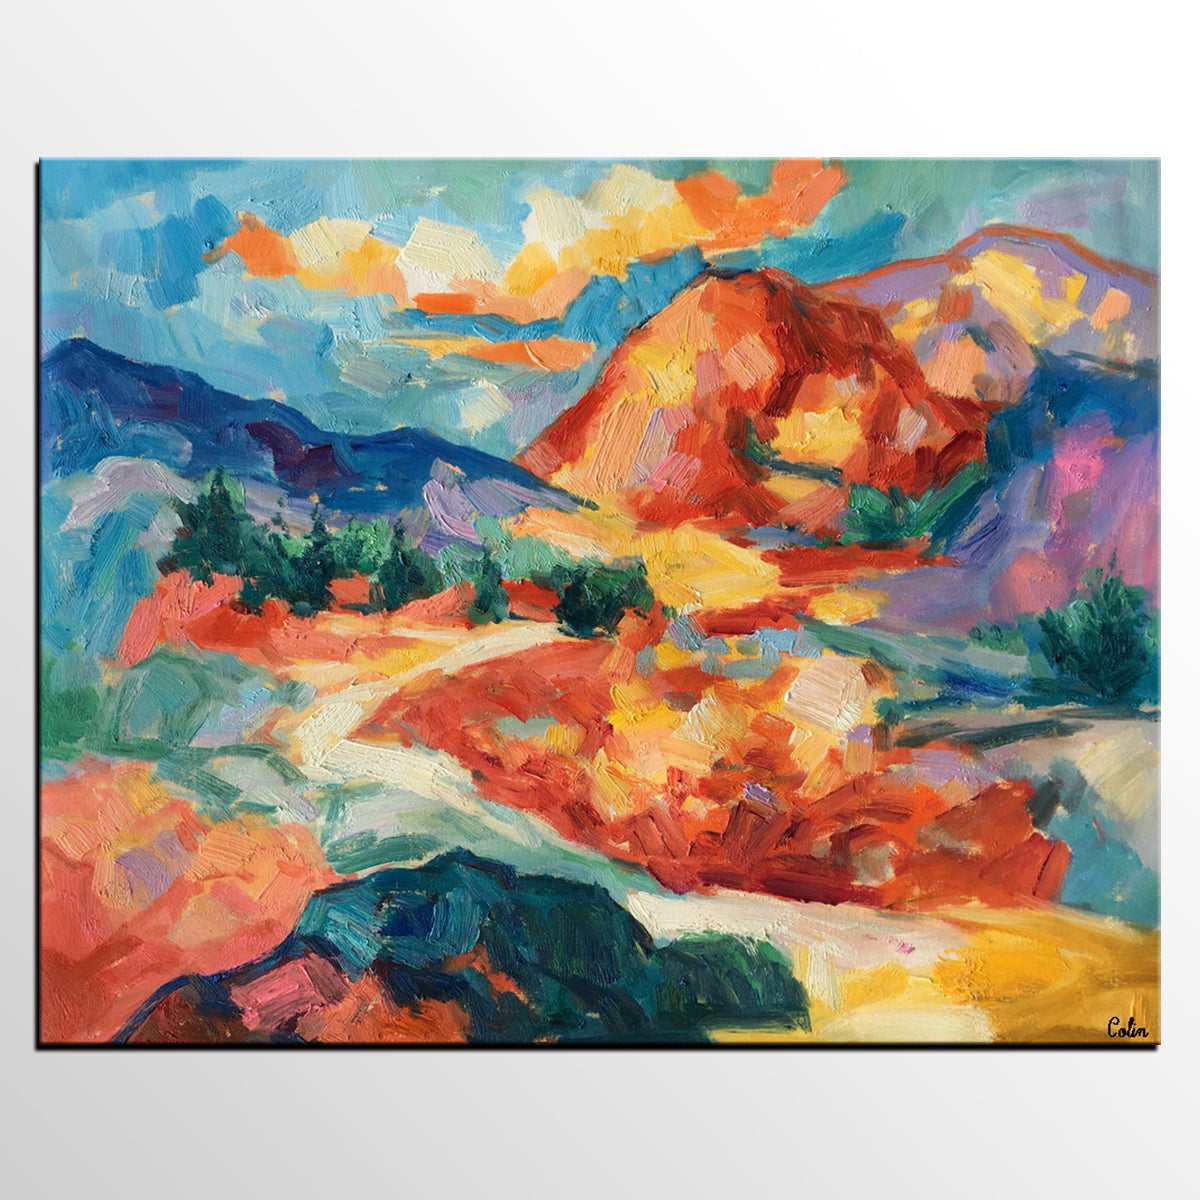 Landscape Painting, Large Canvas Art, Wall Art, Original Oil Painting, Autumn Mountain Landscape - artworkcanvas